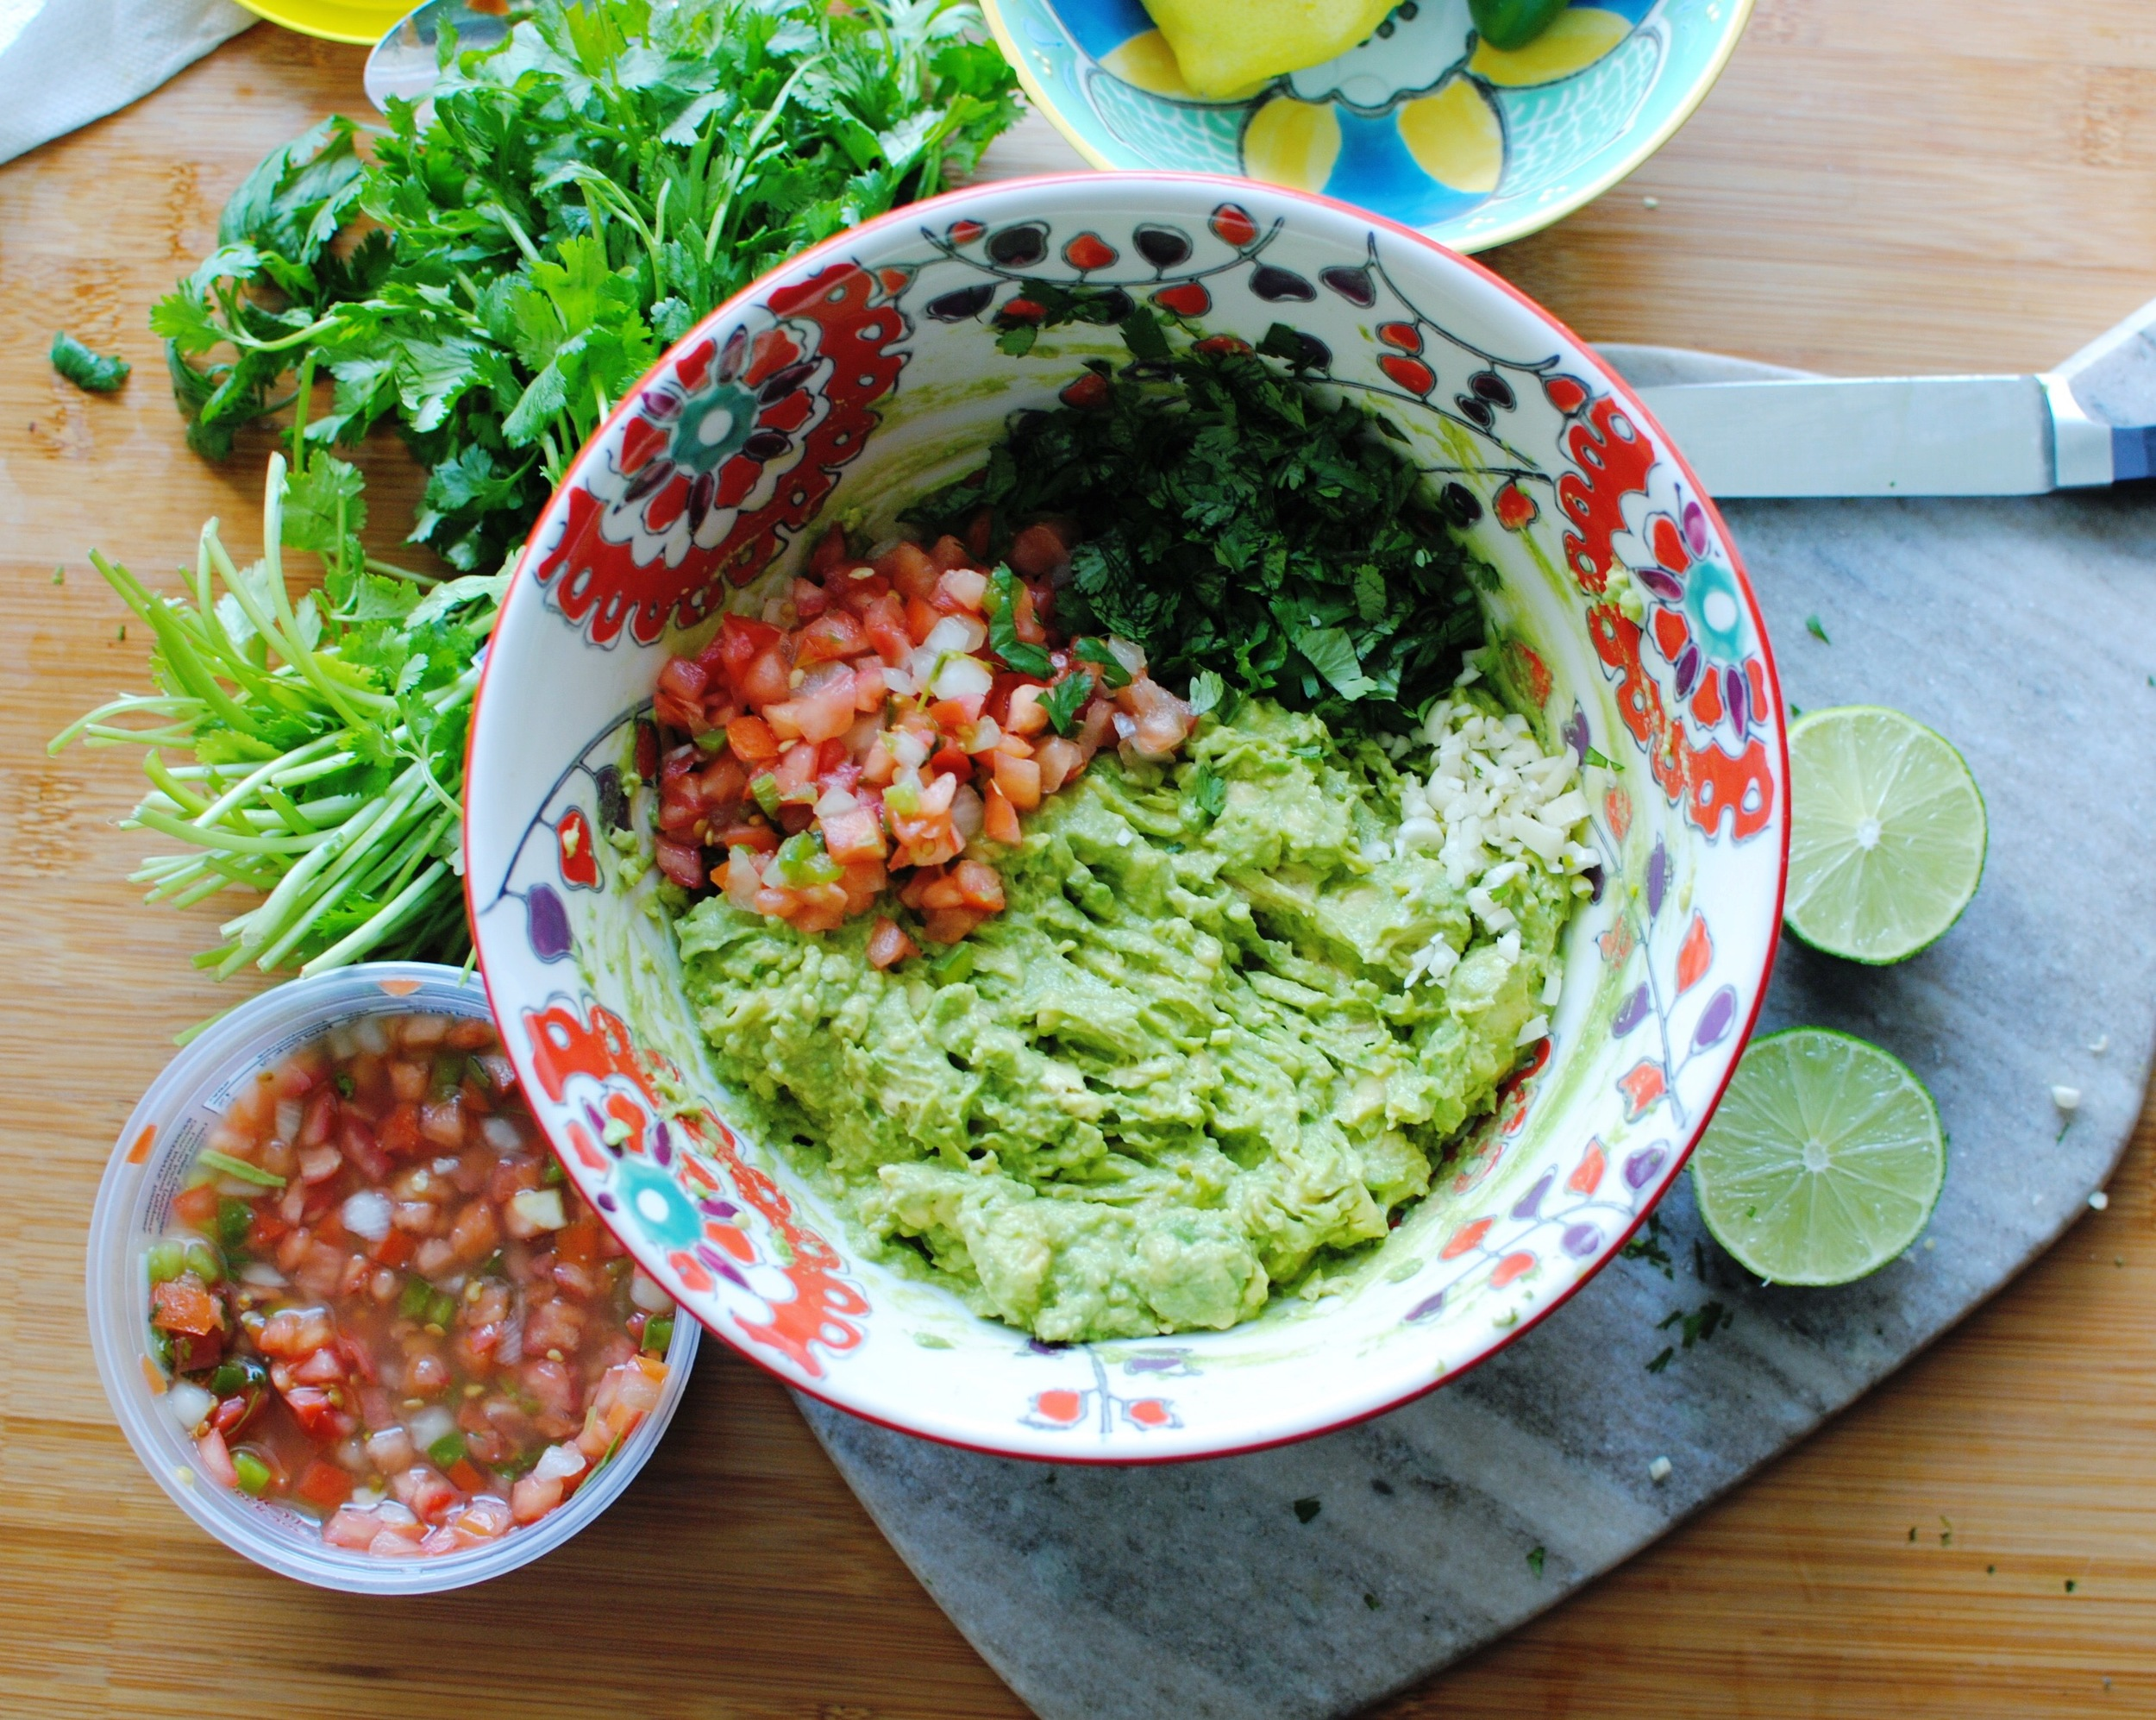 The only thing needed to be chopped was the additional cilantro and garlic cloves!